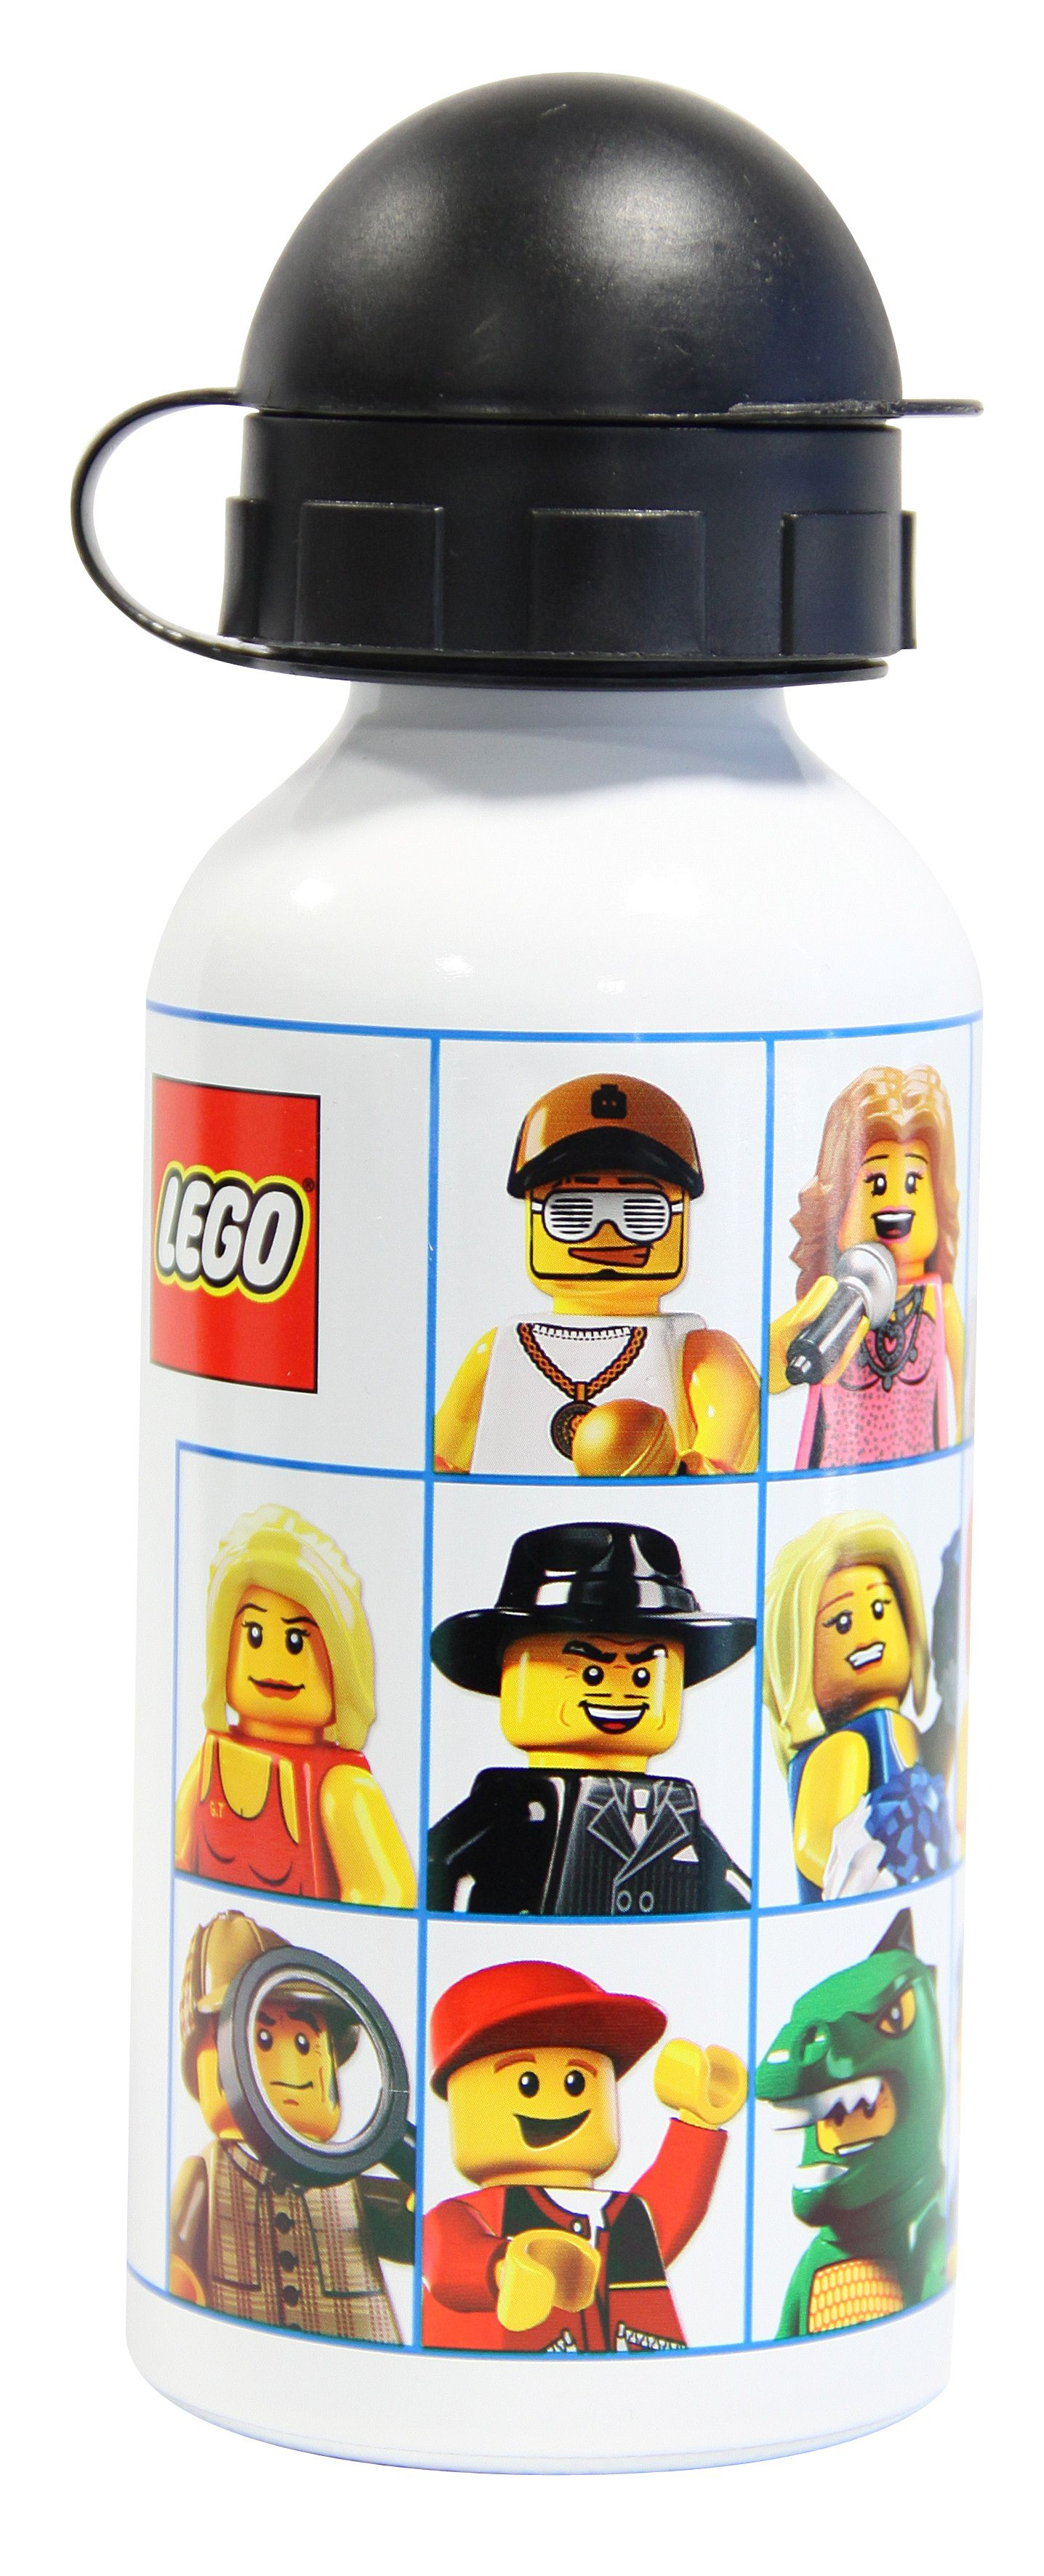 Lego Alloy Minifgure Bottle